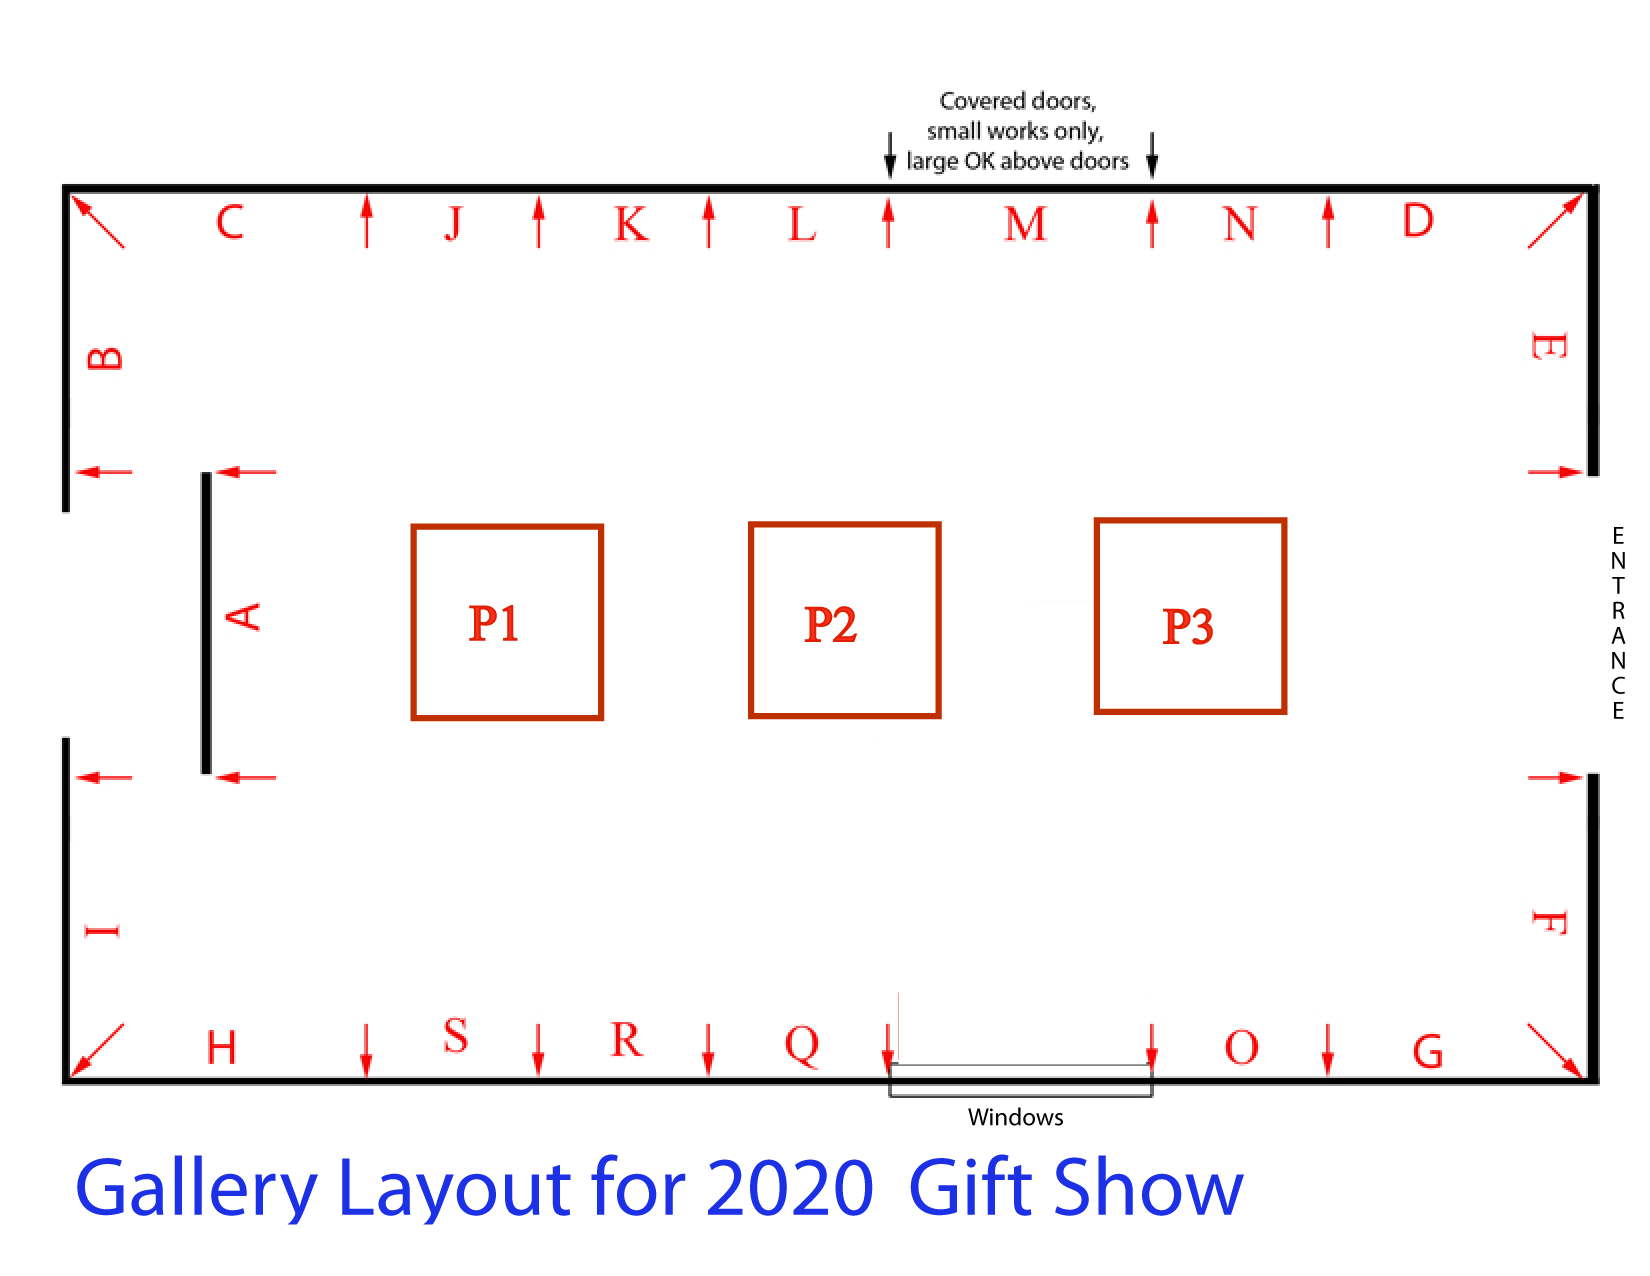 GalleryLayout_GiftShow2020